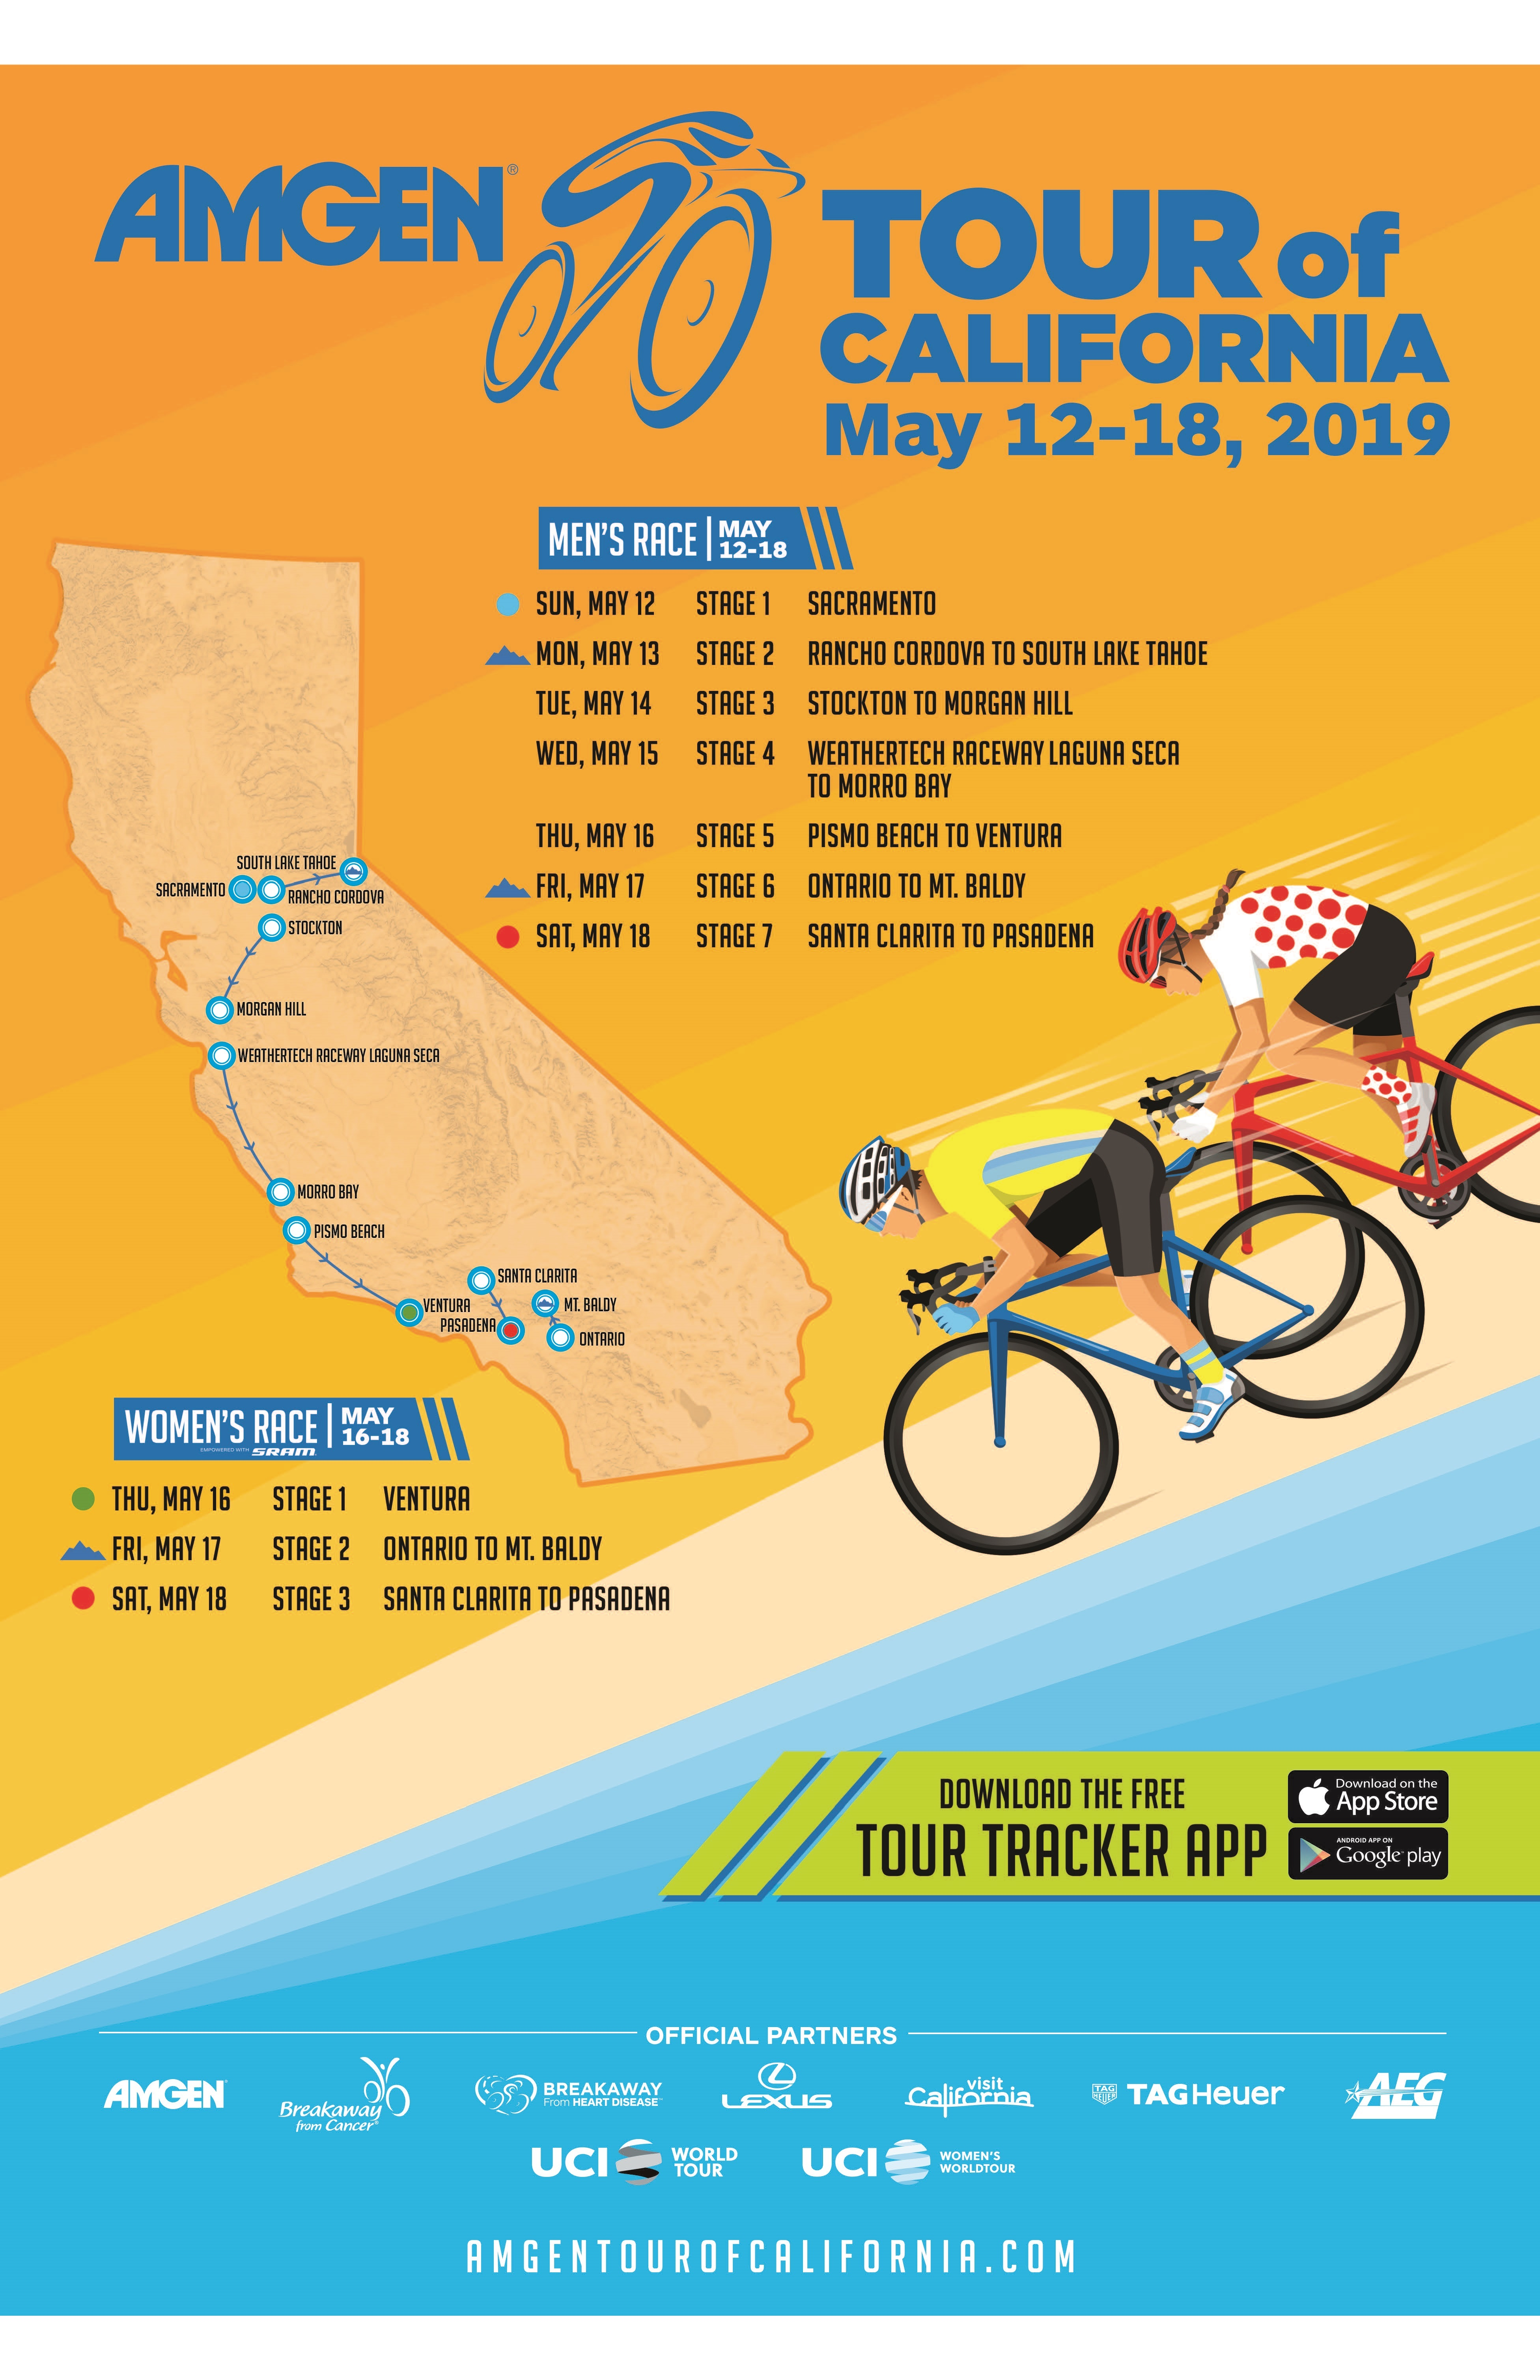 Tour Of California 2019 Amgen Tour of California 2019 Host Cities and Race Schedule